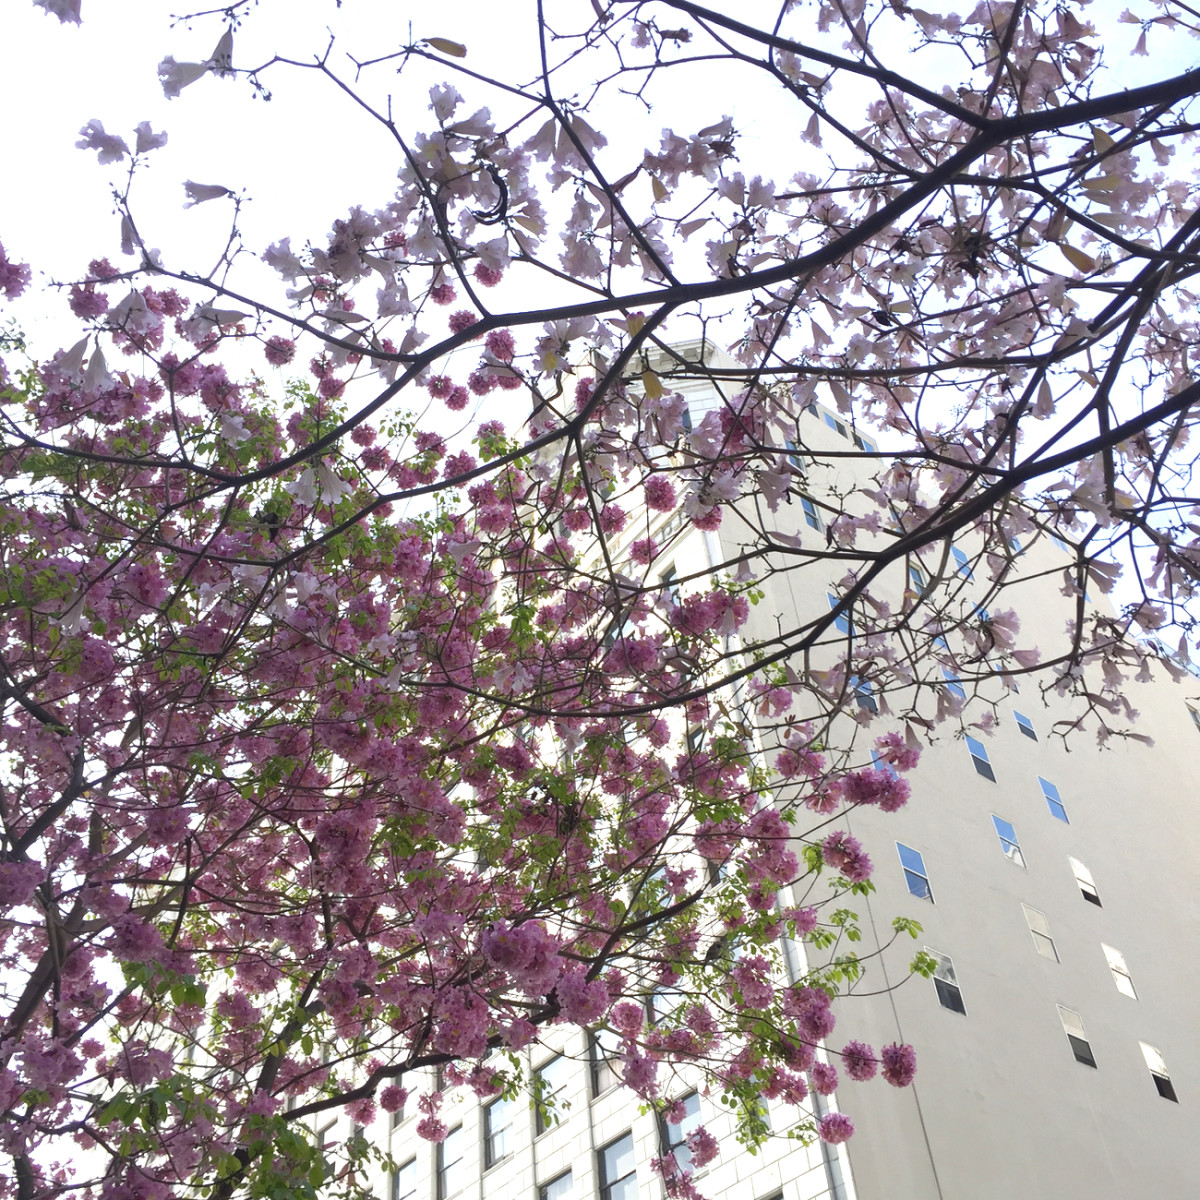 {Cherry blossoms that soften the grit of downtown}